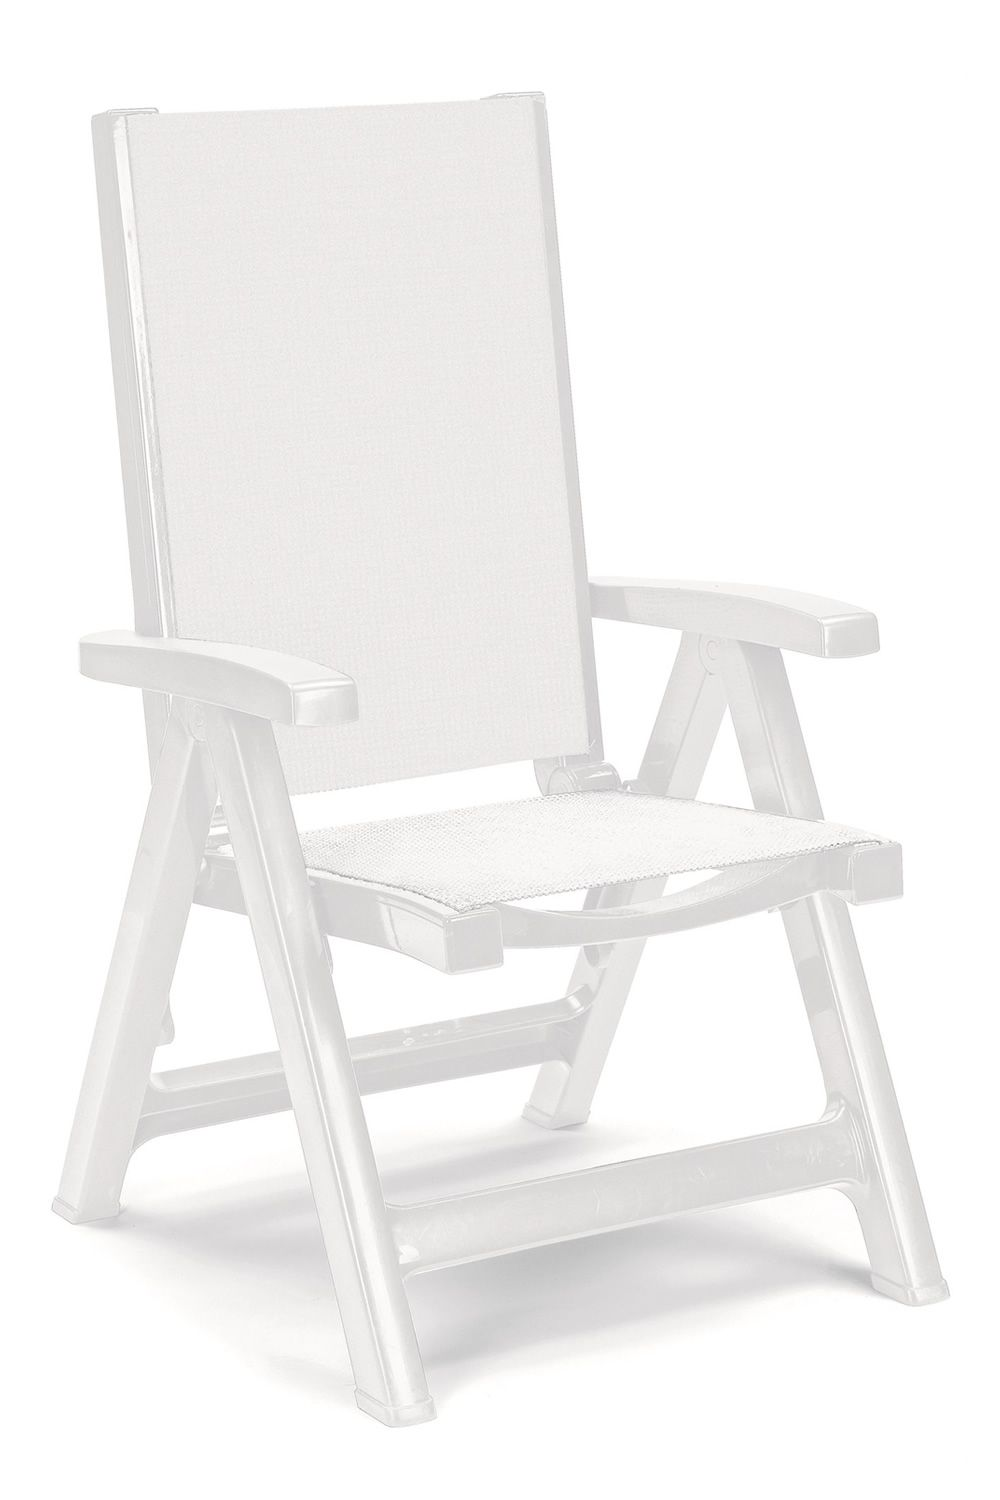 Deckchair, in white polypropylene, with white fabric